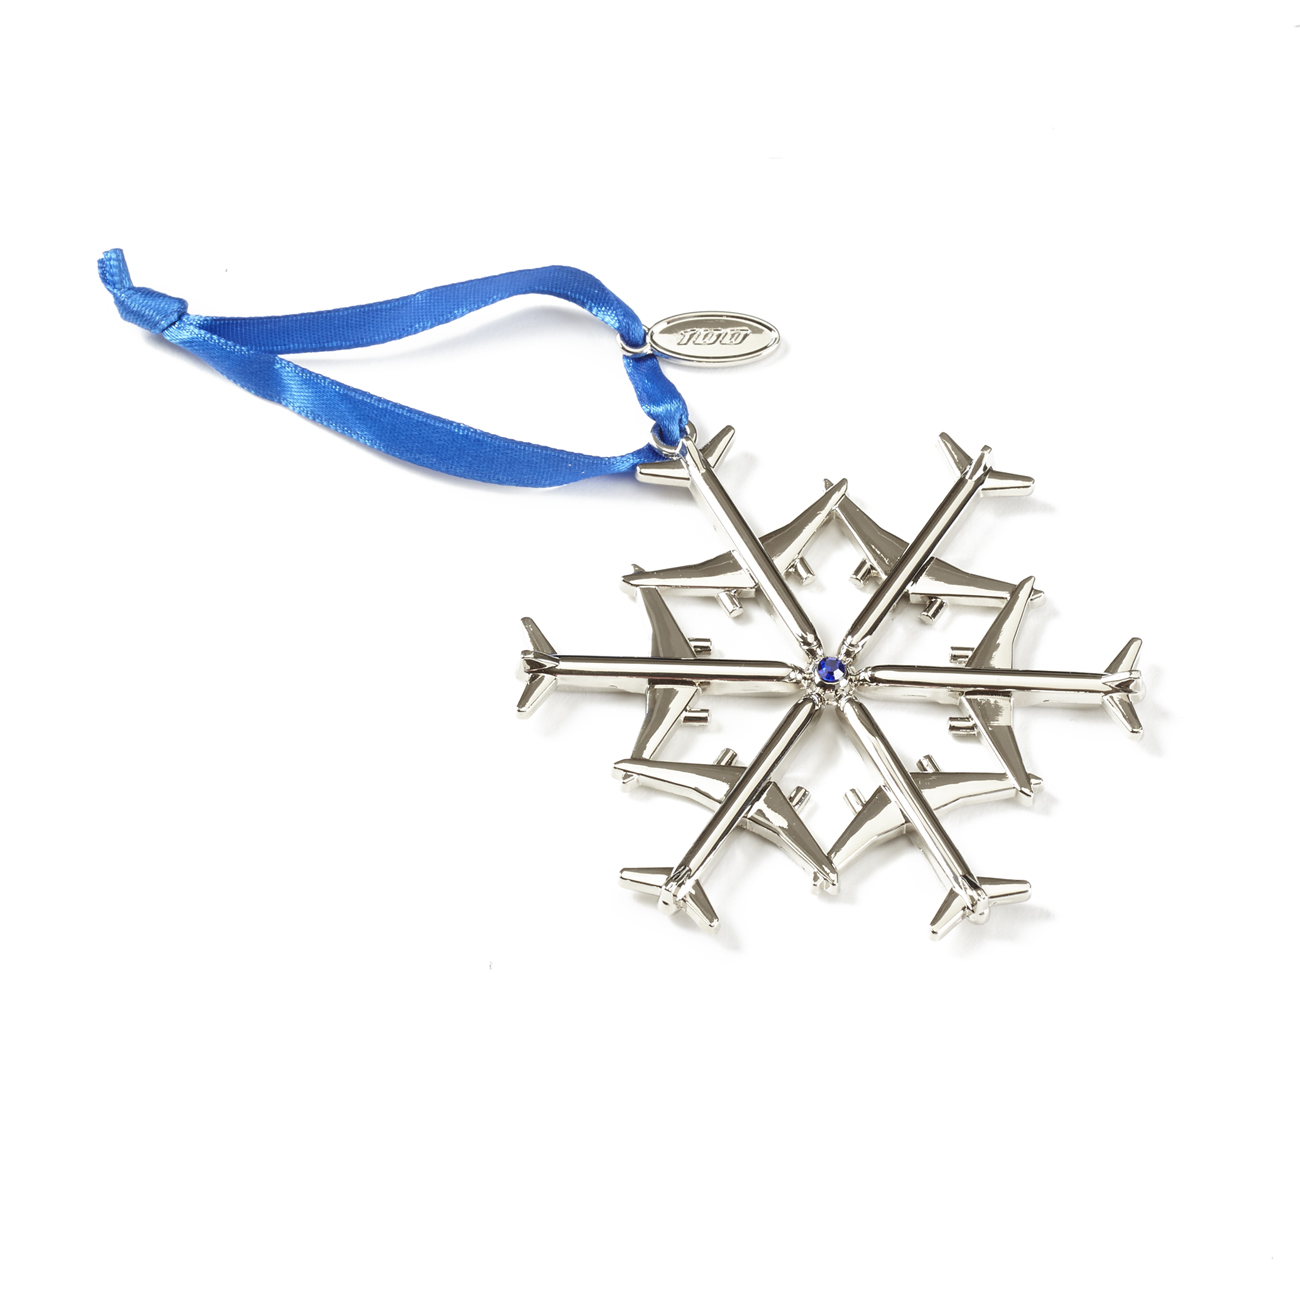 Jet Snowflake 2016 Waterford Nickel-Plated Ornament